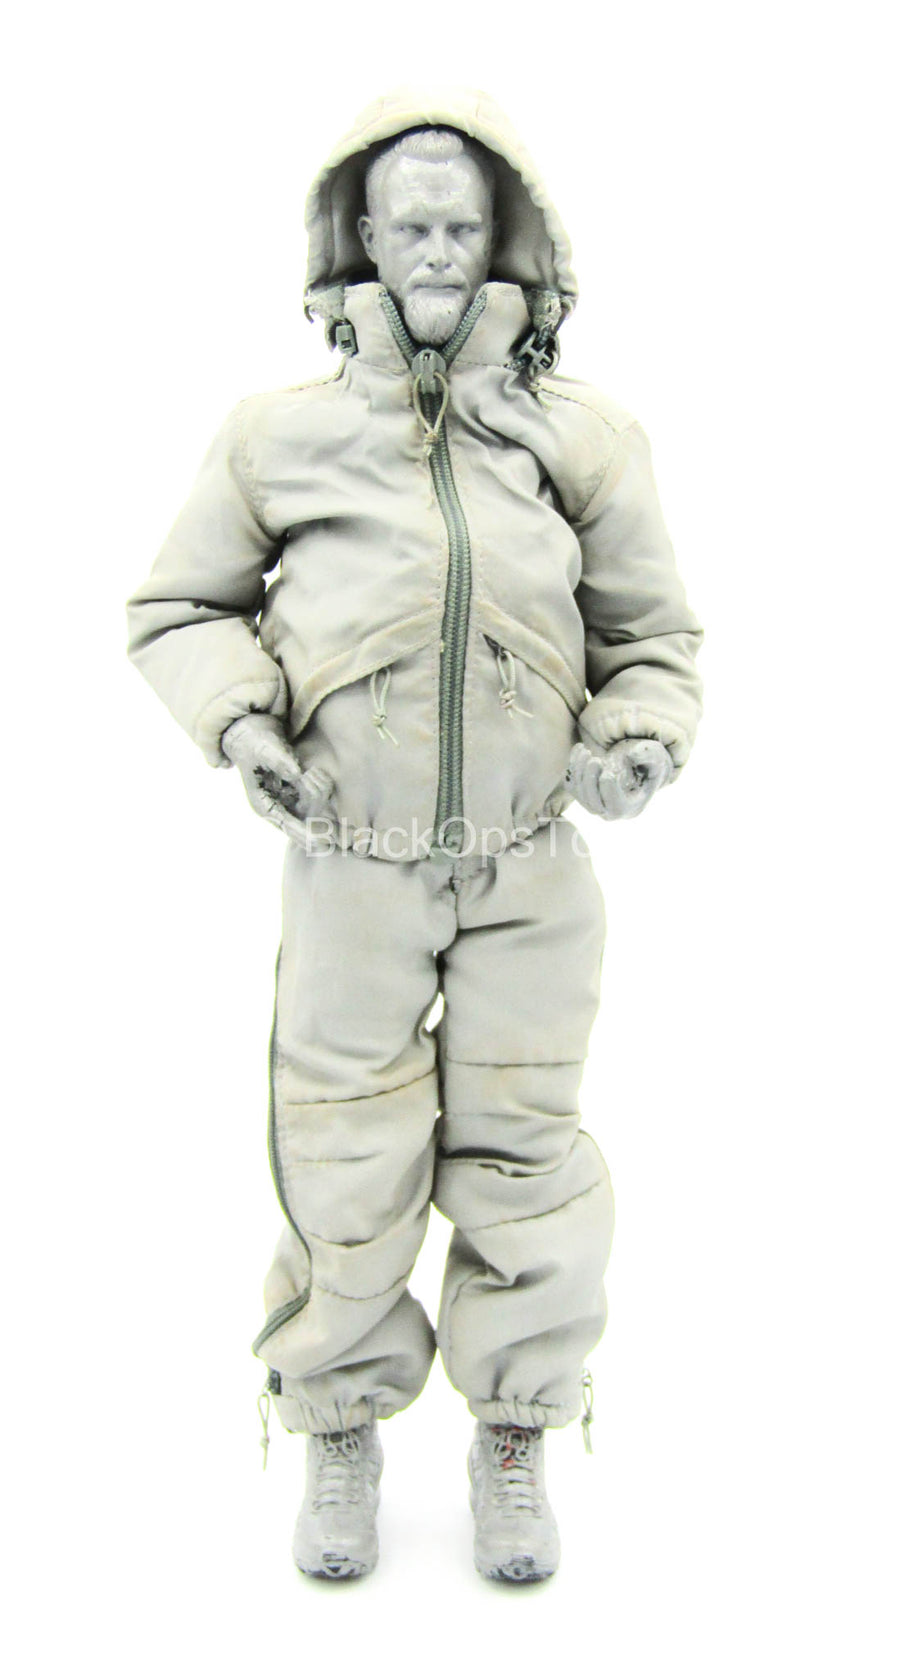 Mountain Ops Sniper PCU Ver. - ECWCS Level 7 PCU Suit